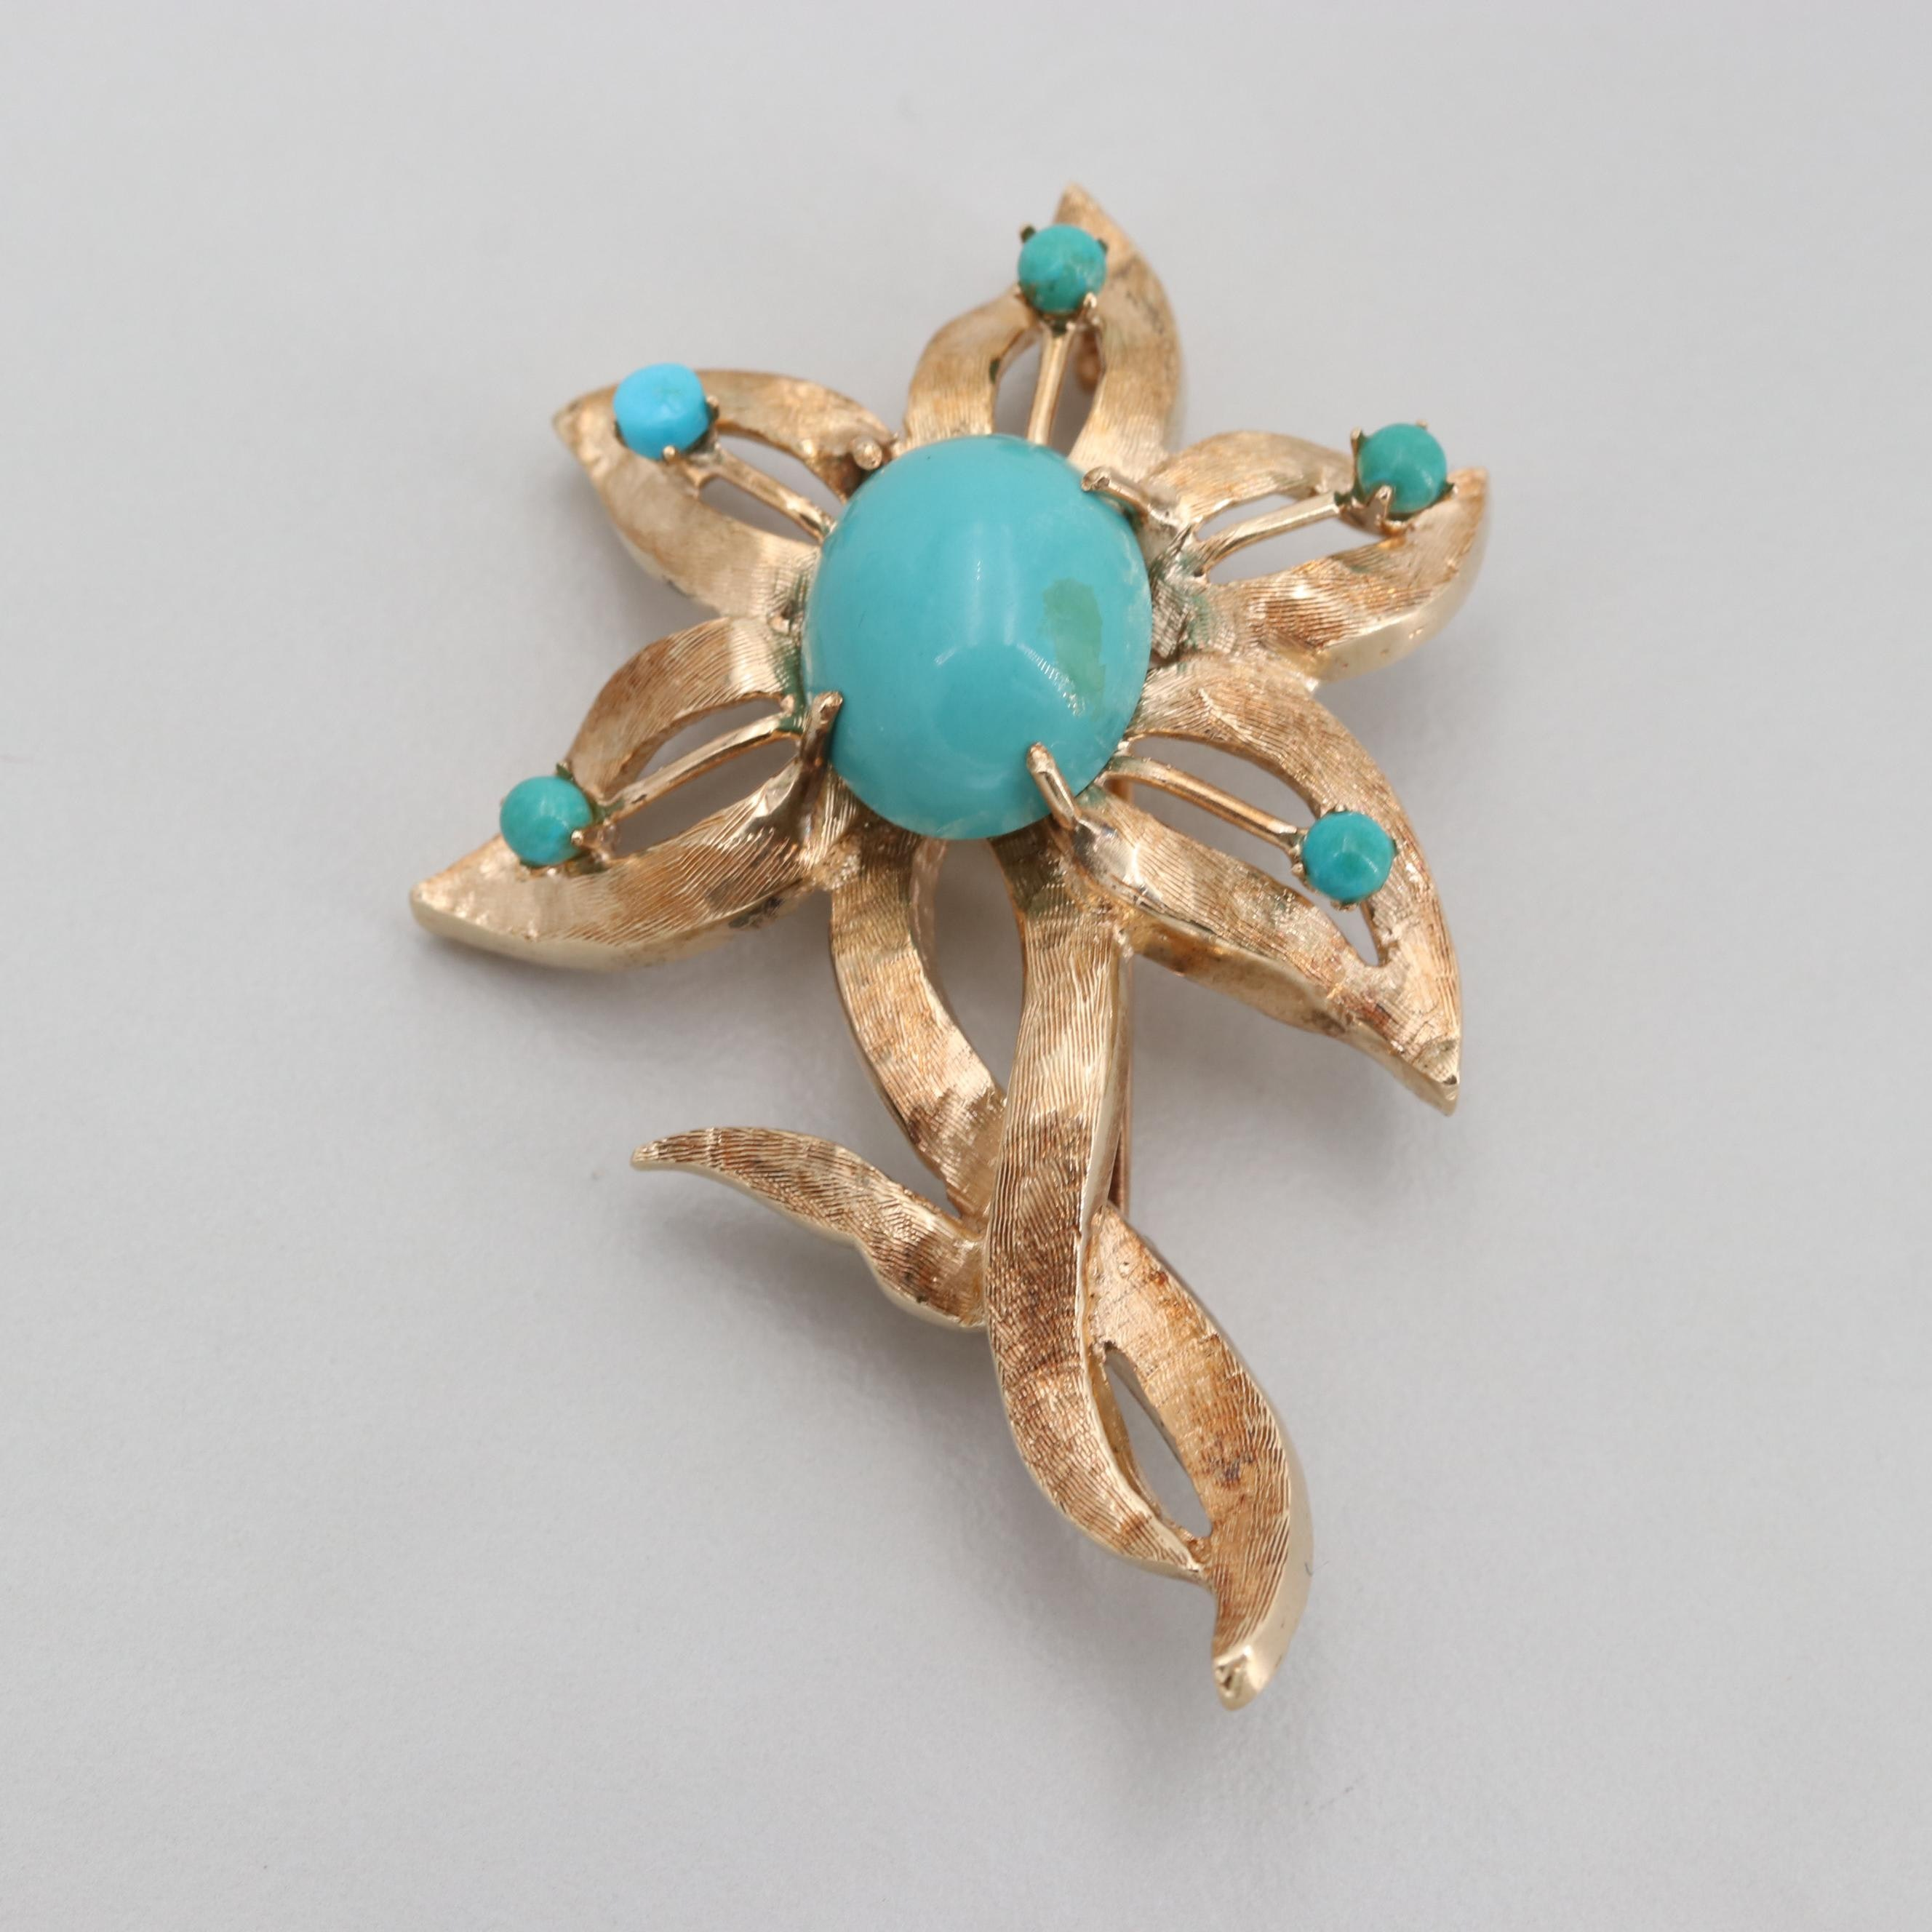 Vintage 14K Yellow Gold Turquoise Flower Brooch